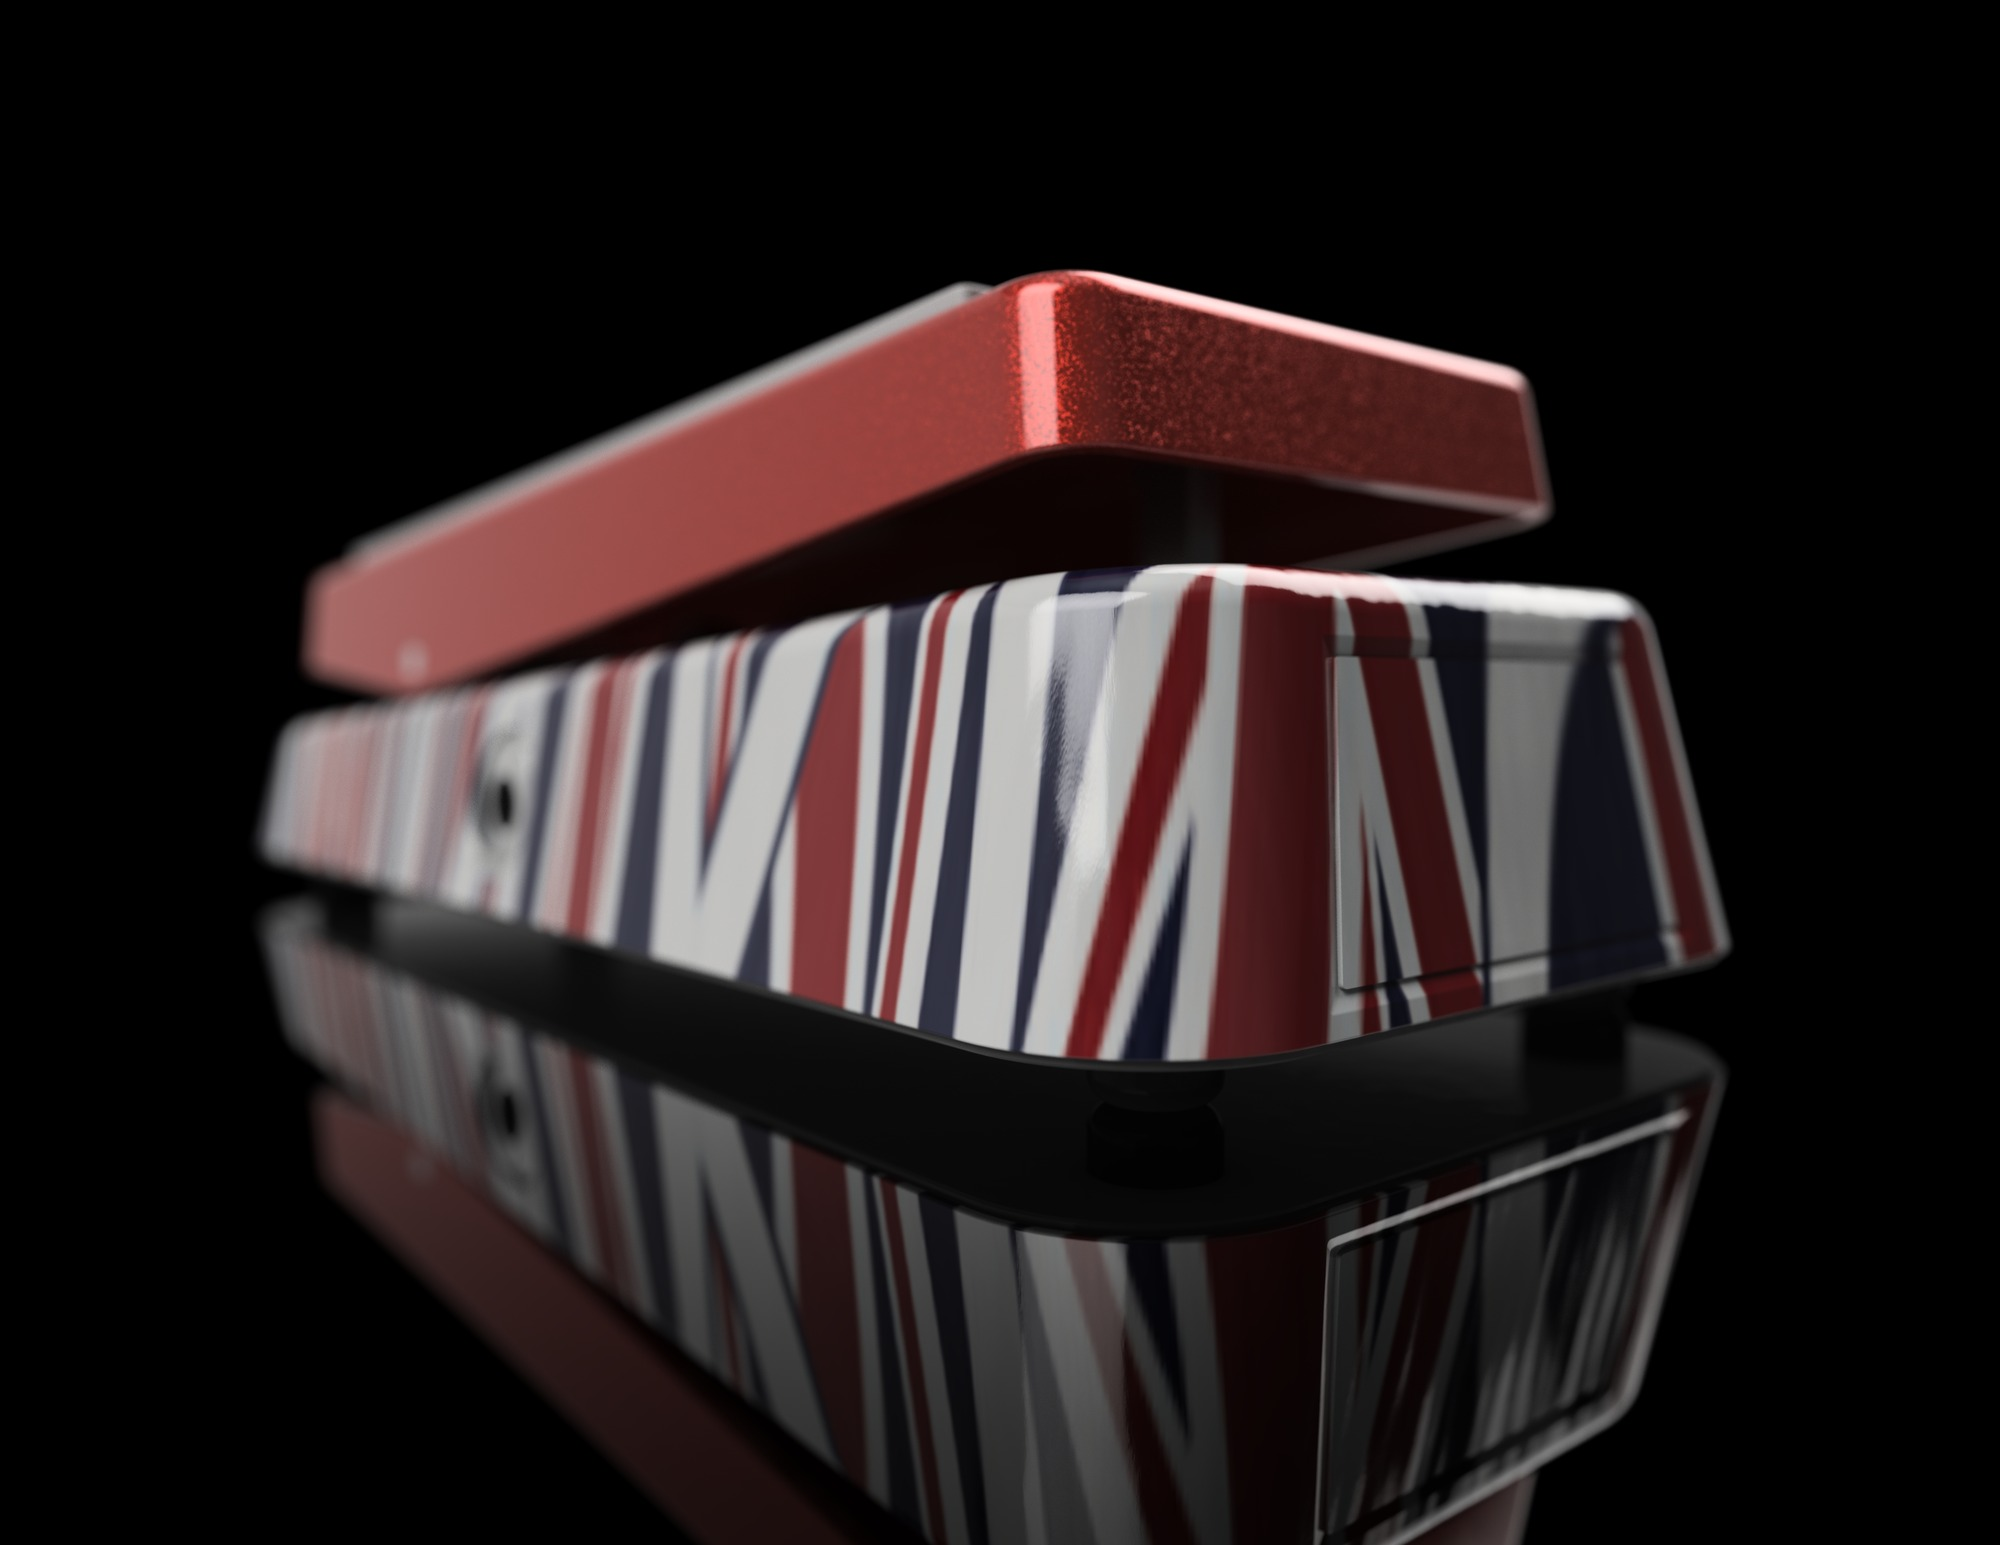 Union_jack_wah_2015-may-12_01-52-09pm-000_customizedview4663361